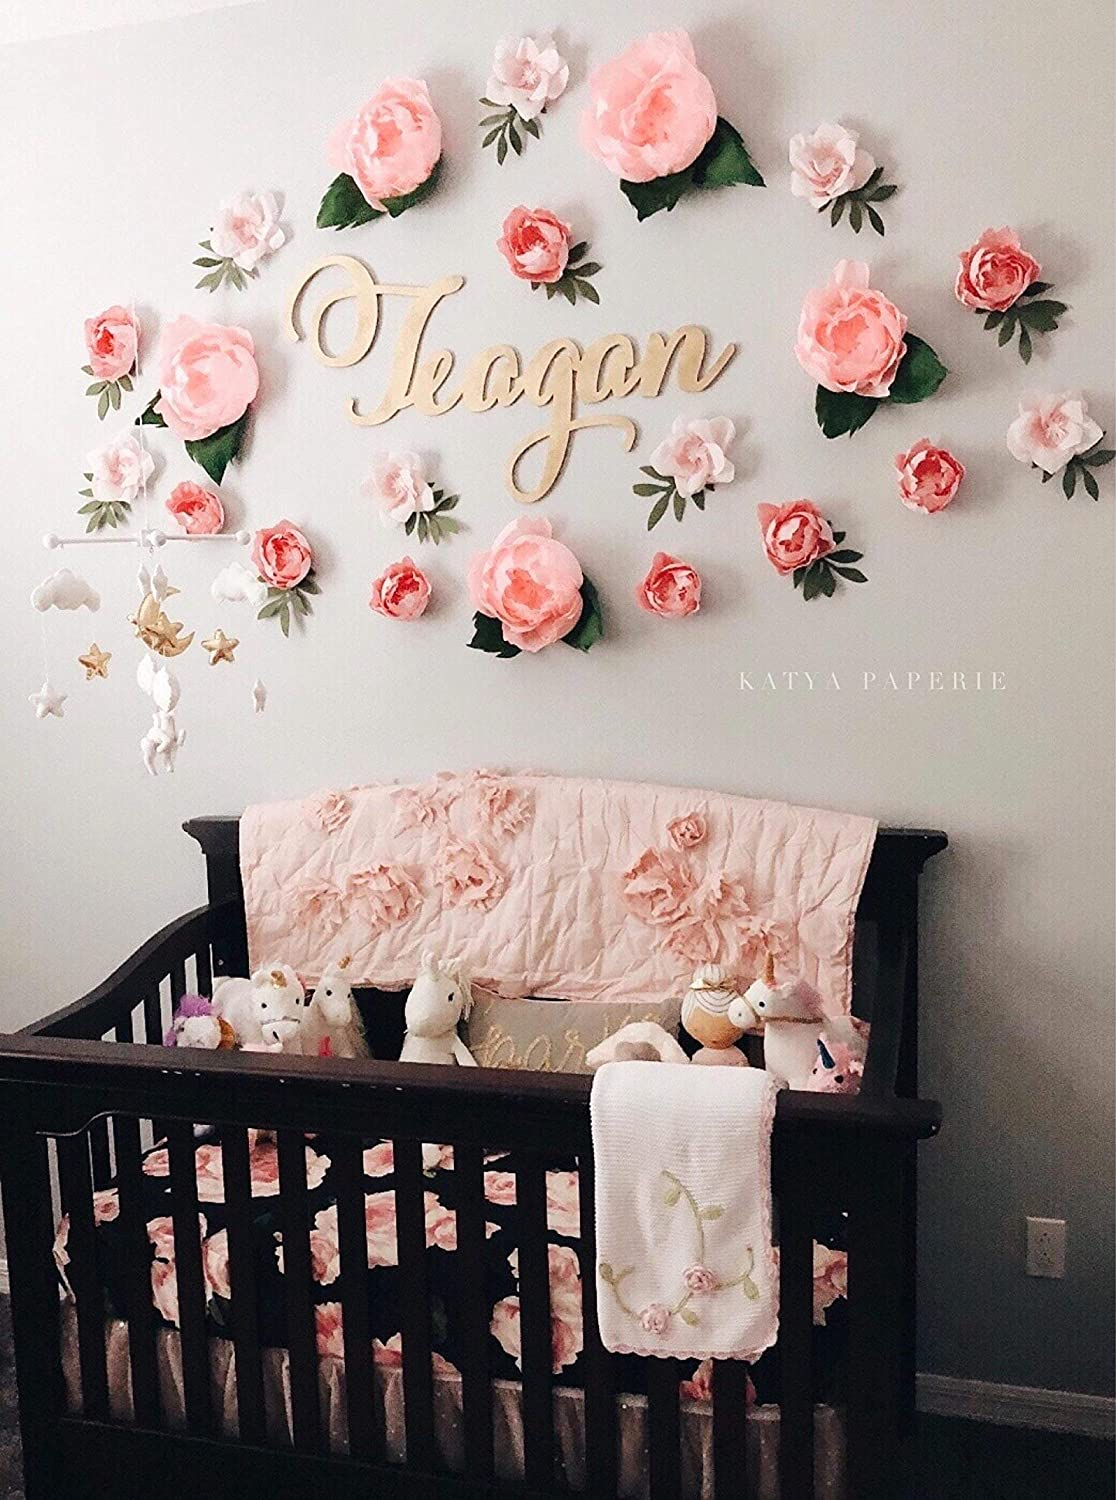 Amazon.com: Dreamy paper flower wall display. Girl nursery wall decor.  Garden party photo booth. Crepe paper wall flowers. Baby shower flower  backdrop.